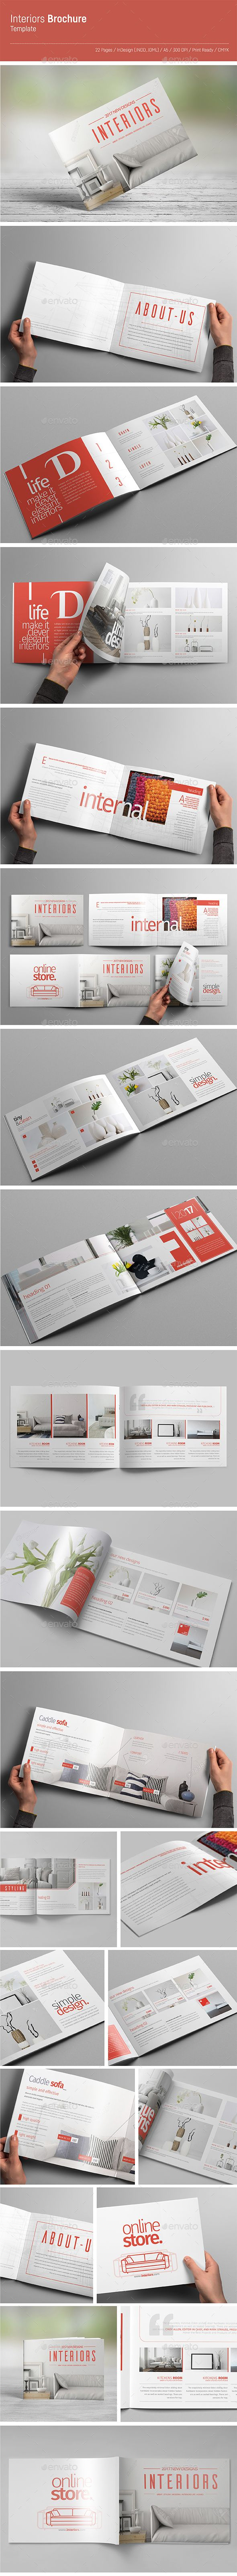 A5 Booklet - Catalogue | A5, Template and Catalog